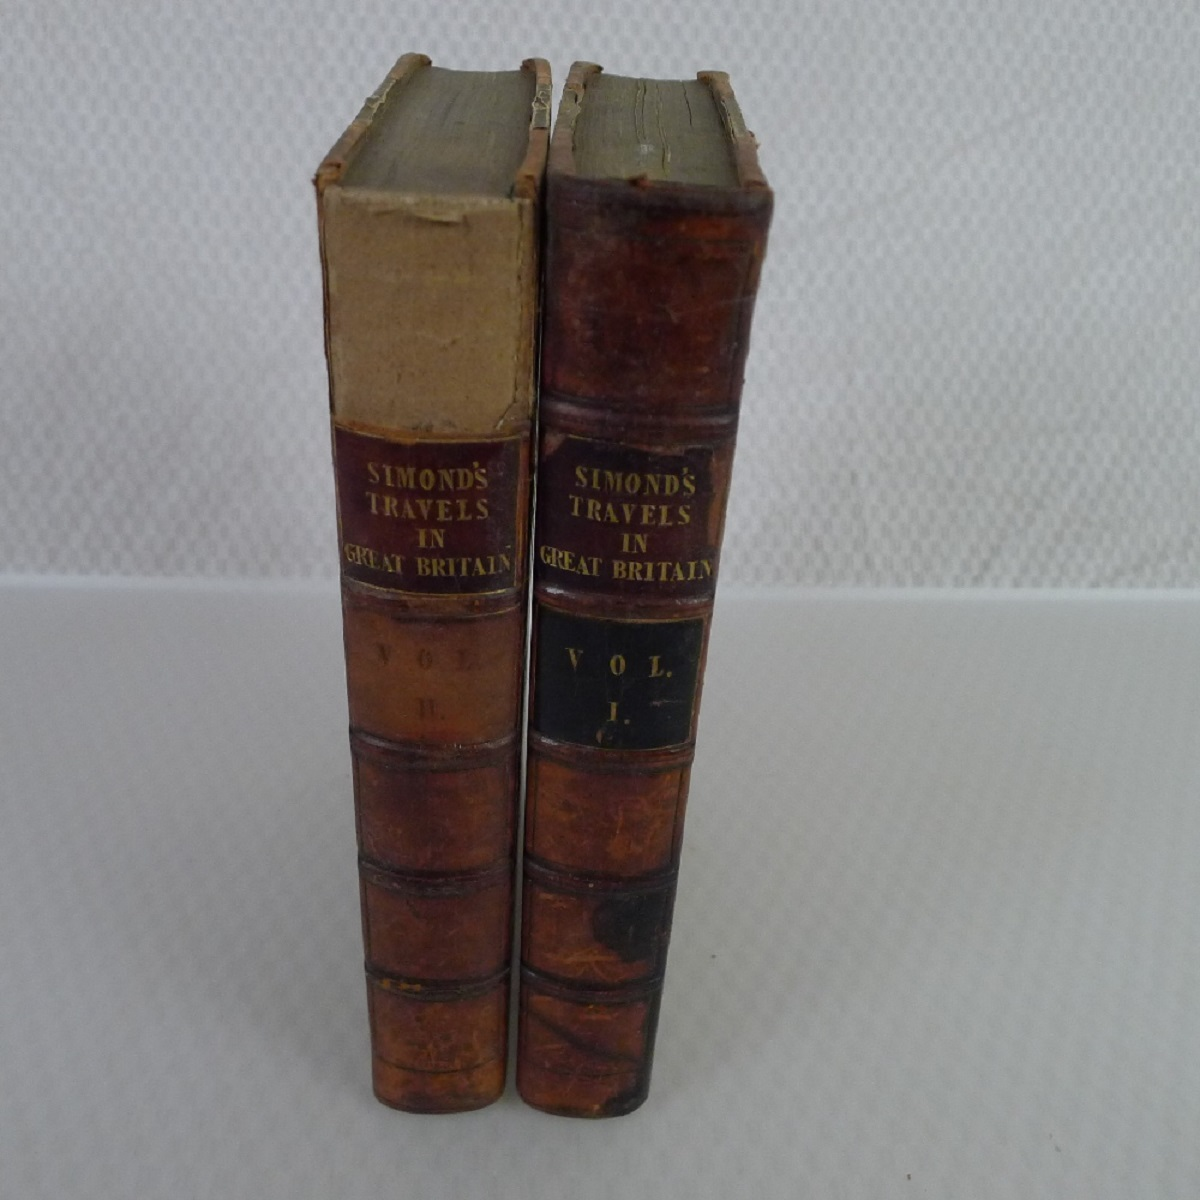 Simond's Travels in Great Britain Volumes I and II, Second Edition published in 1817, being a